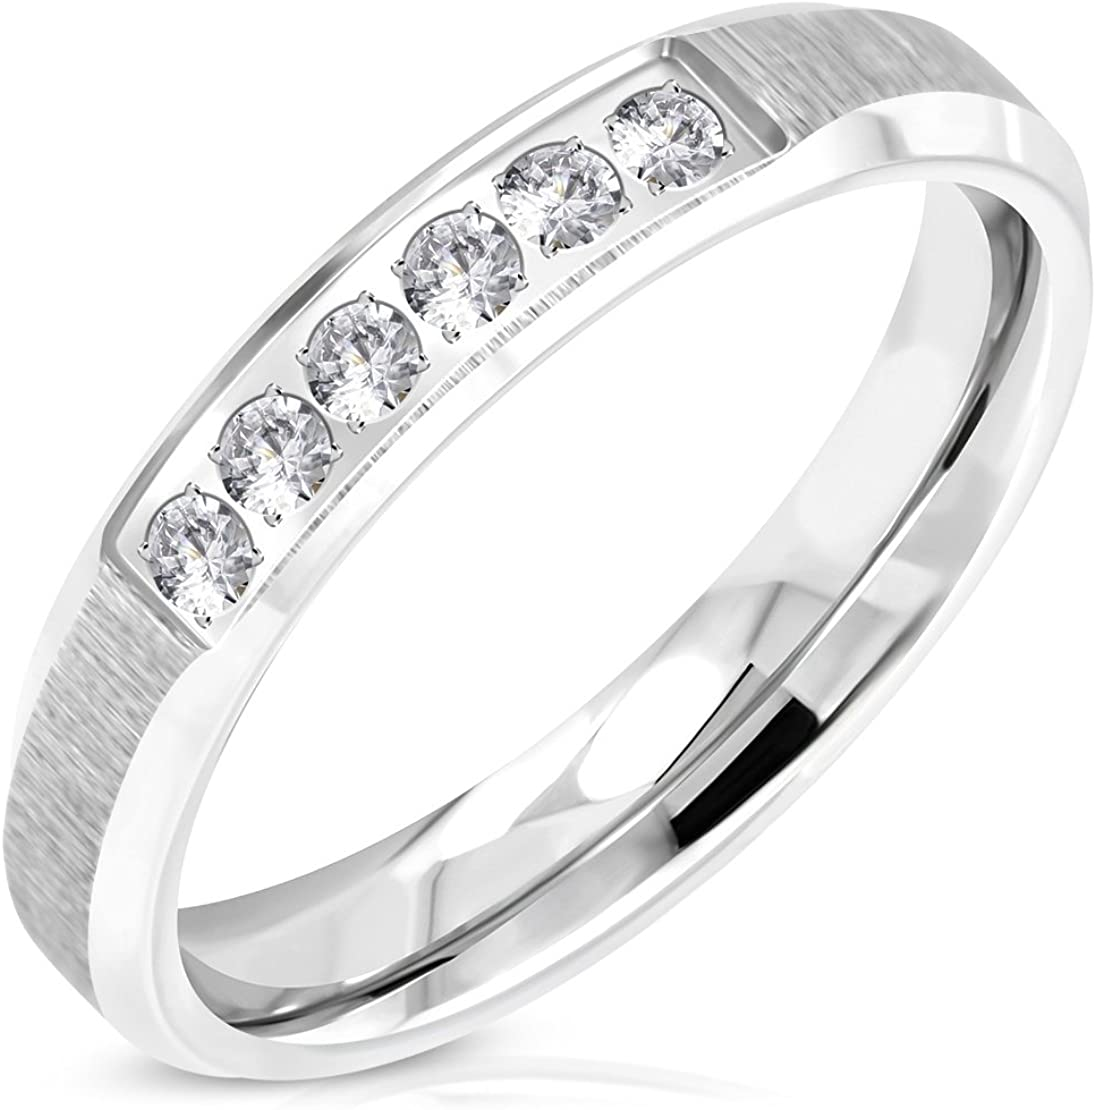 Stainless Steel Satin Finished Comfort Fit Half-Round Band Ring with Clear CZ